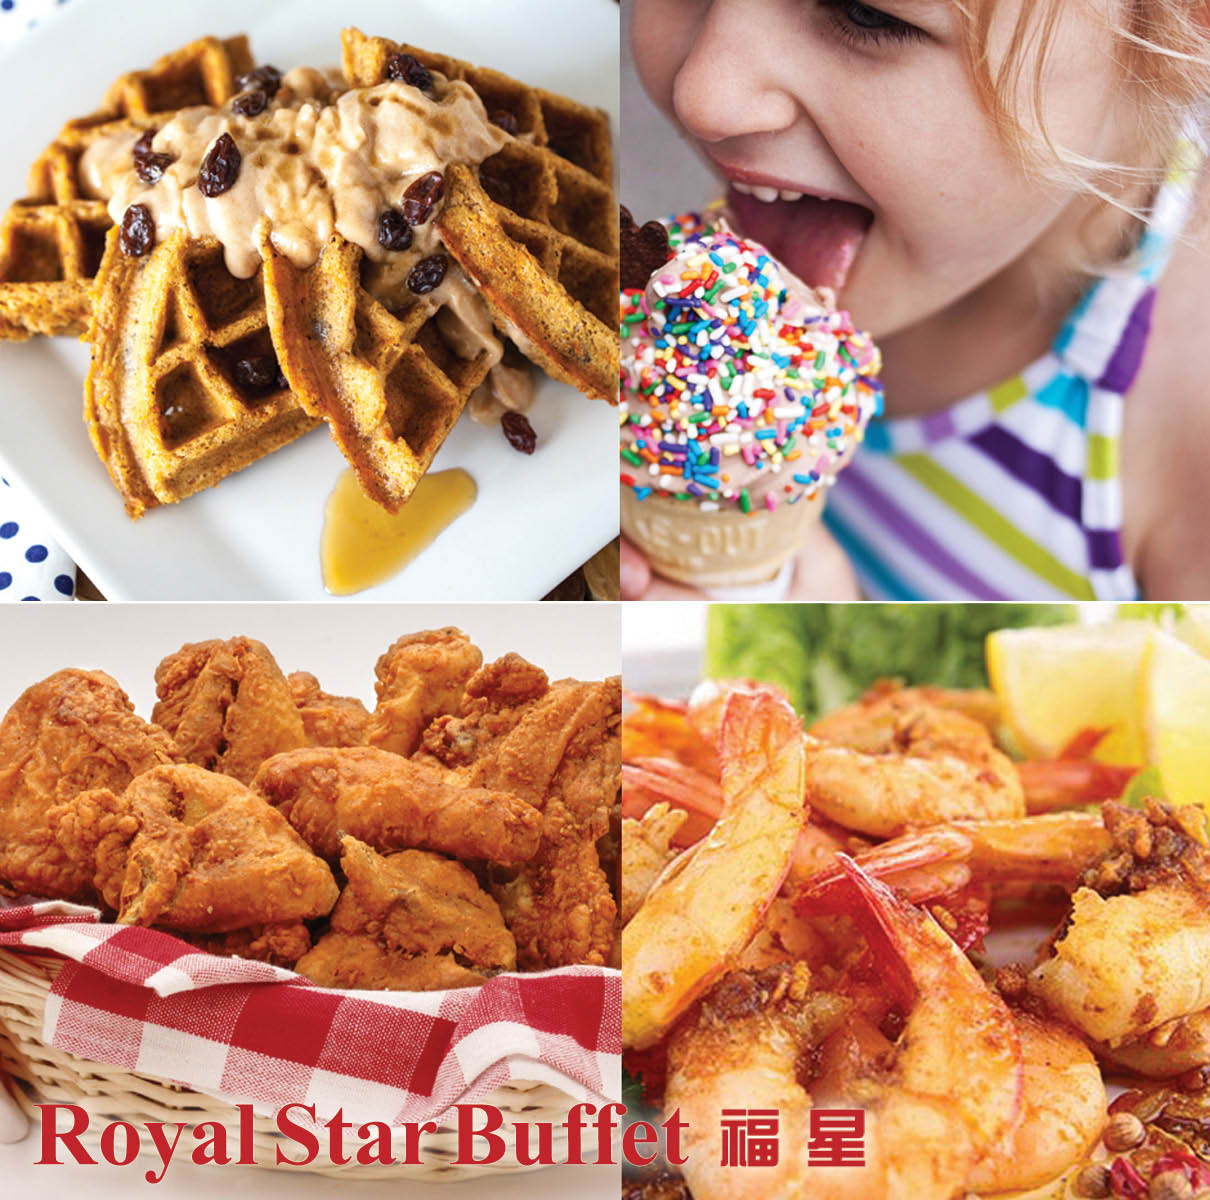 Royal Star Buffet logo over-layered on pictures of breakfast waffles, kid eating ice cream cone, fried chicken and pan-fried shrimp located in Mount Vernon.